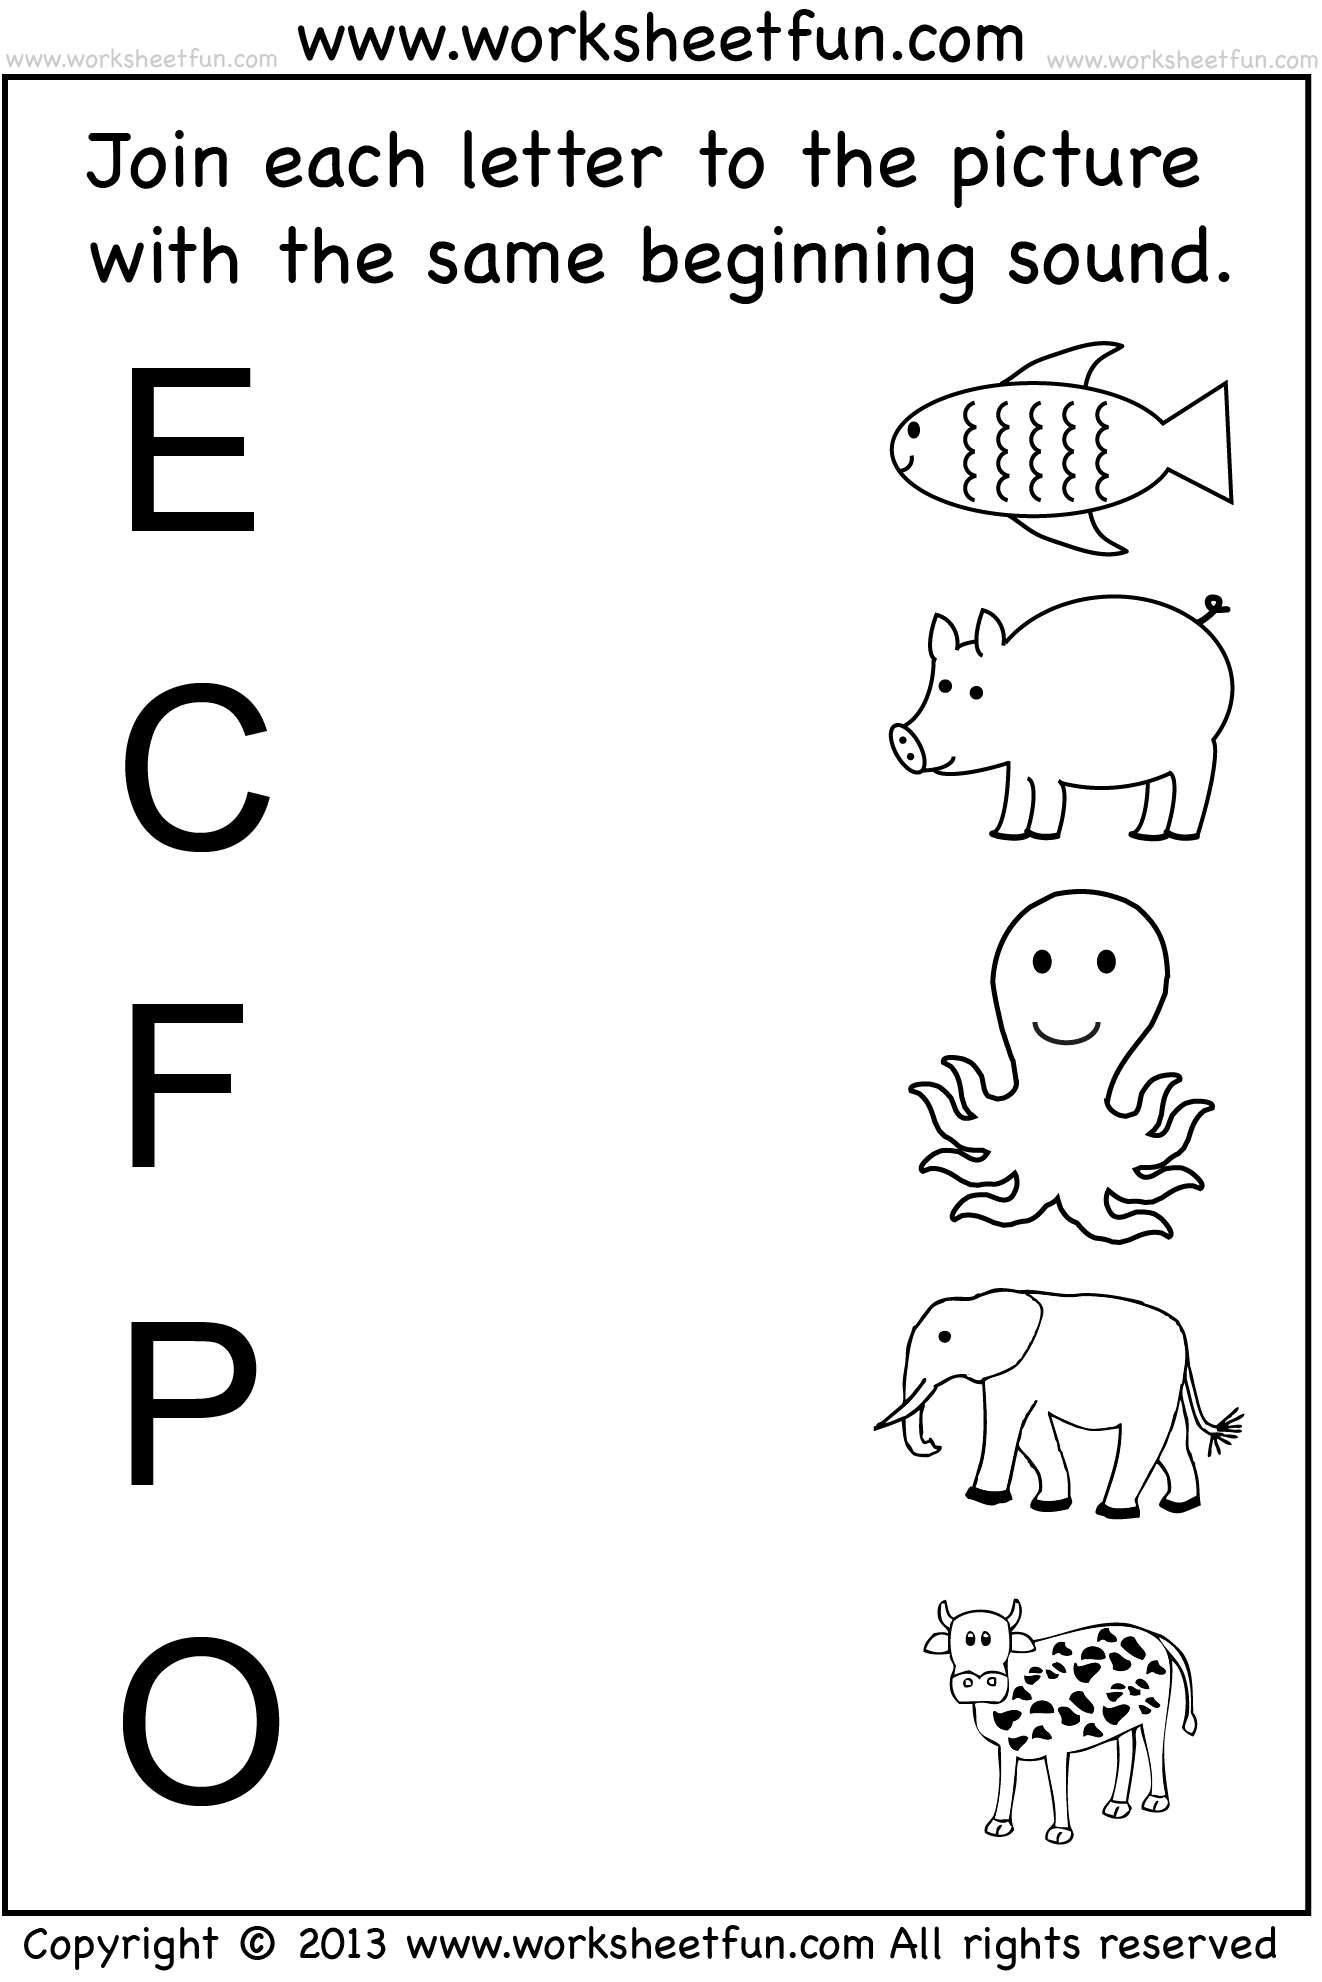 Worksheet Kindergarten Activity Sheets Free 1000 images about worksheets on pinterest dinosaurs preschool free printable kindergarten and worksheets